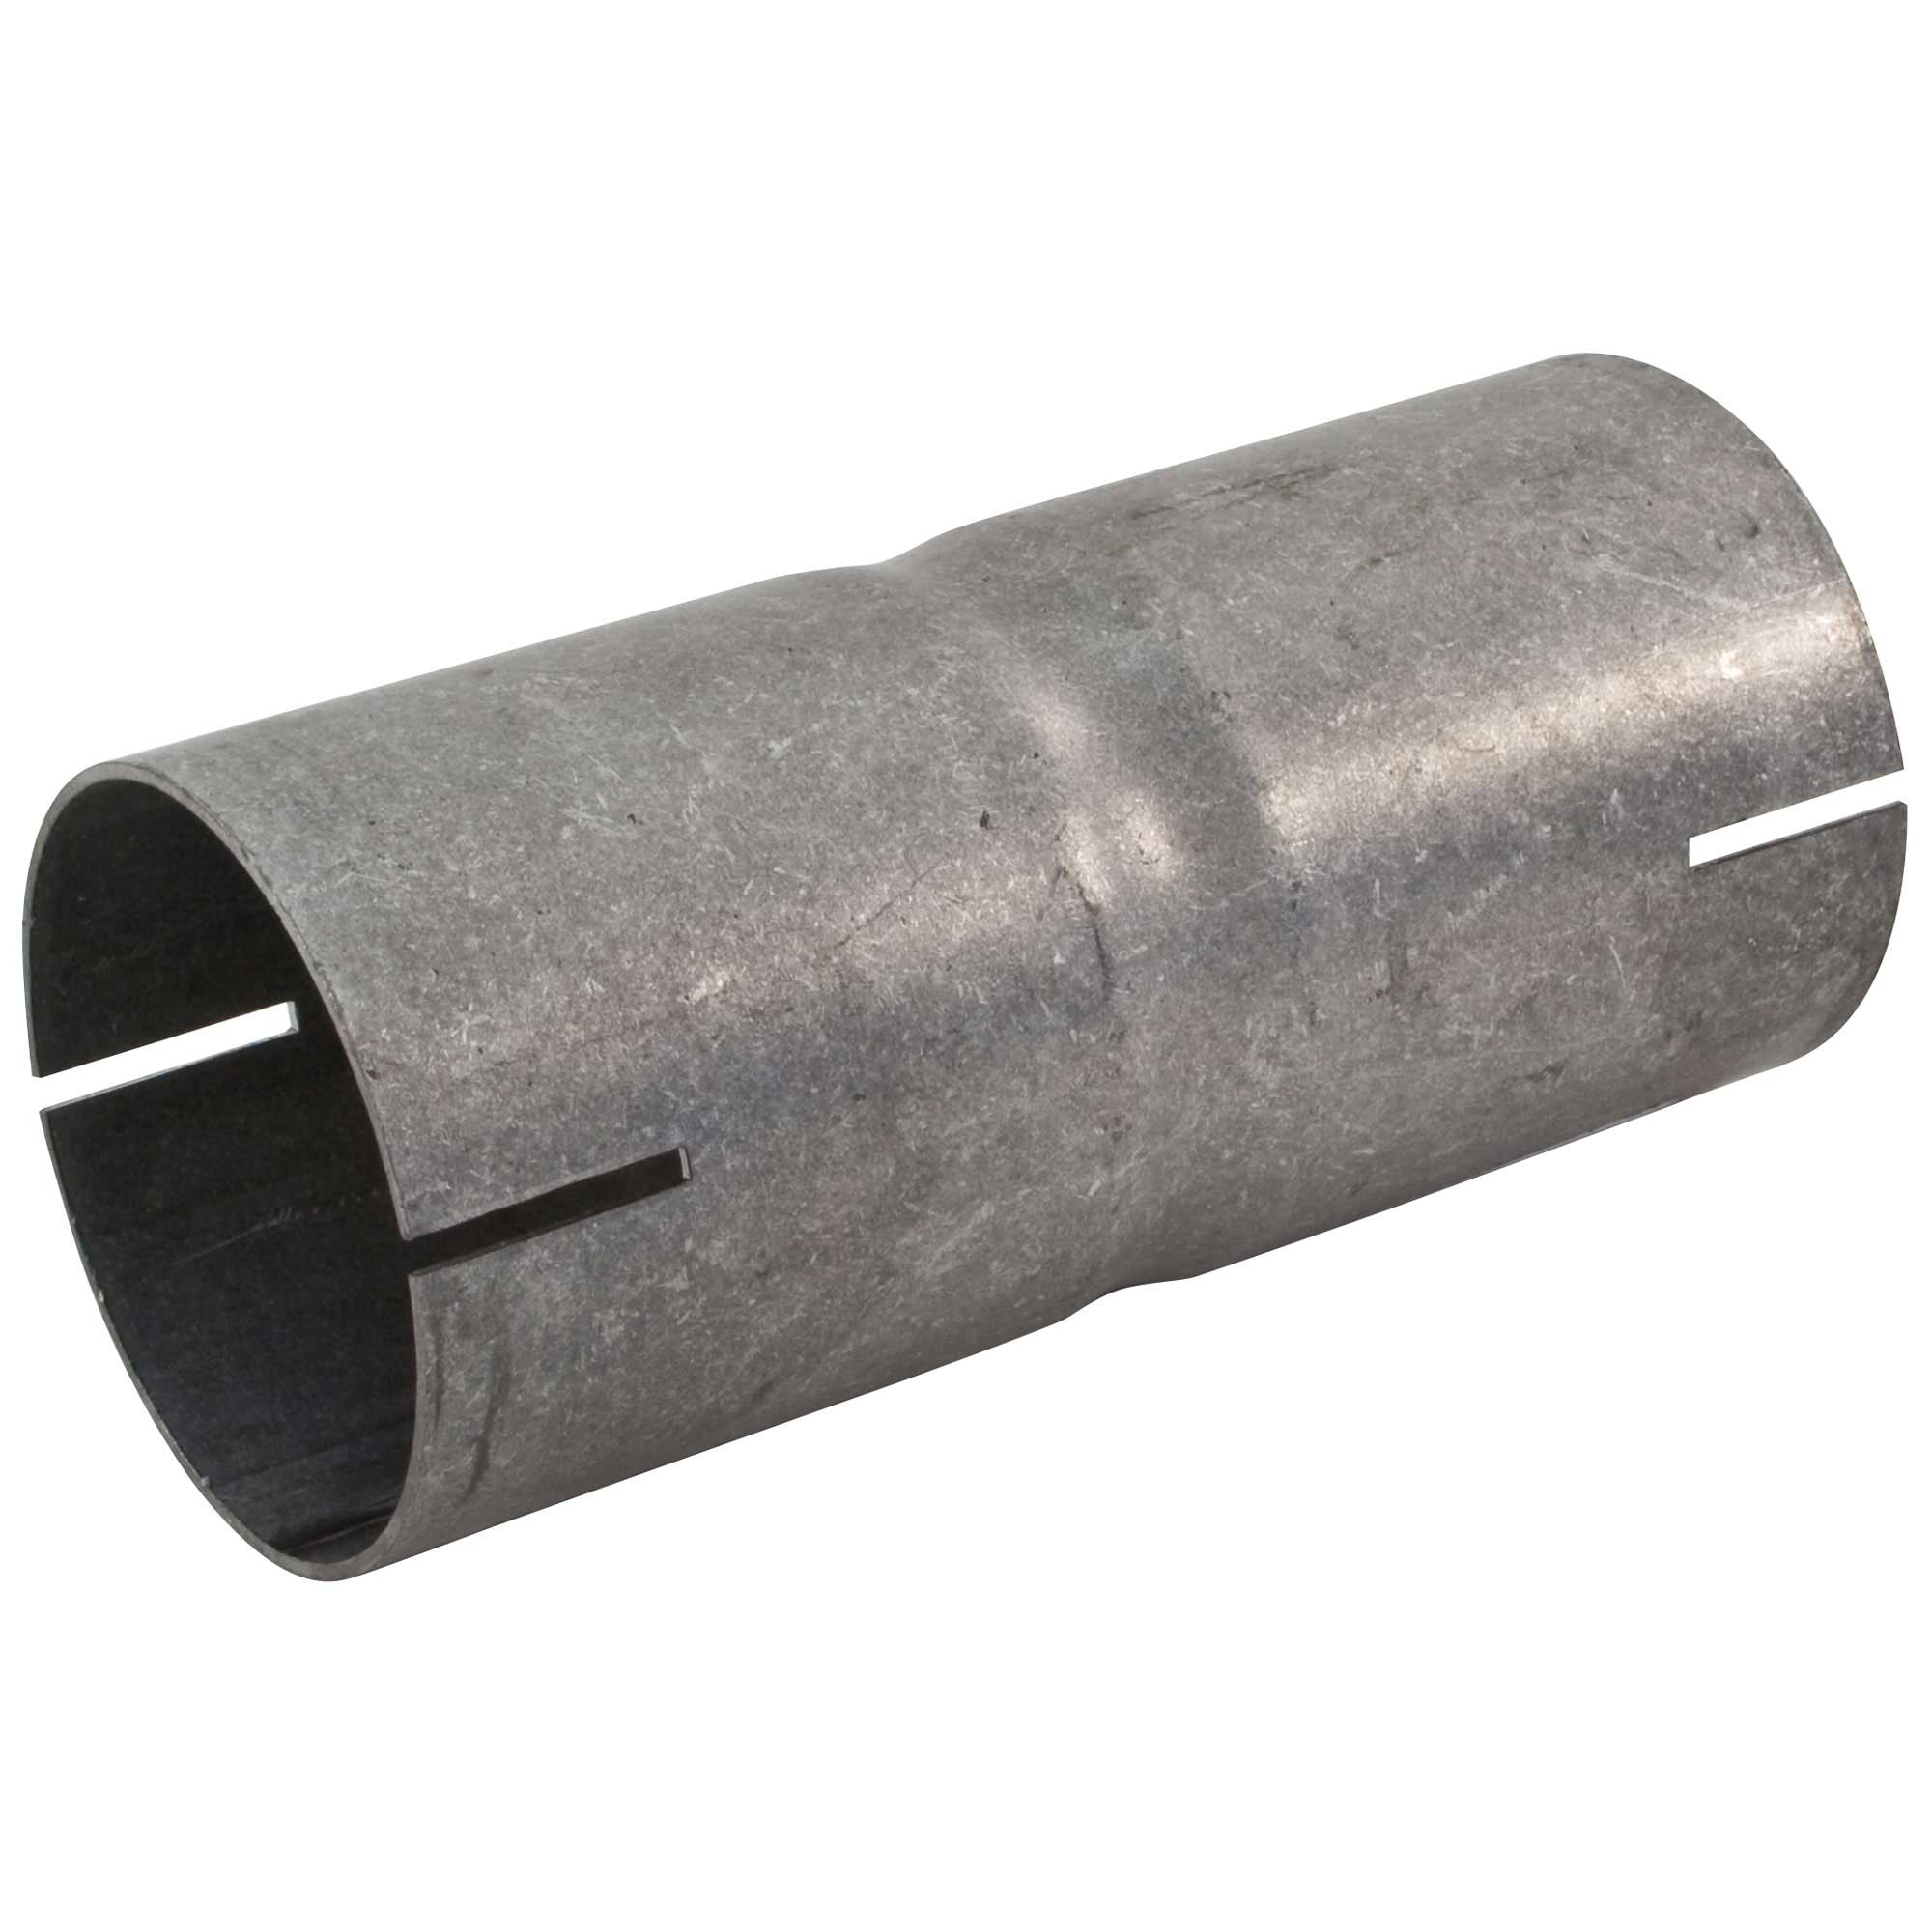 "Mild Steel Jetex Mandrel Exhaust Tubing Bends 2.5/"" Size 30 Degree Angle"